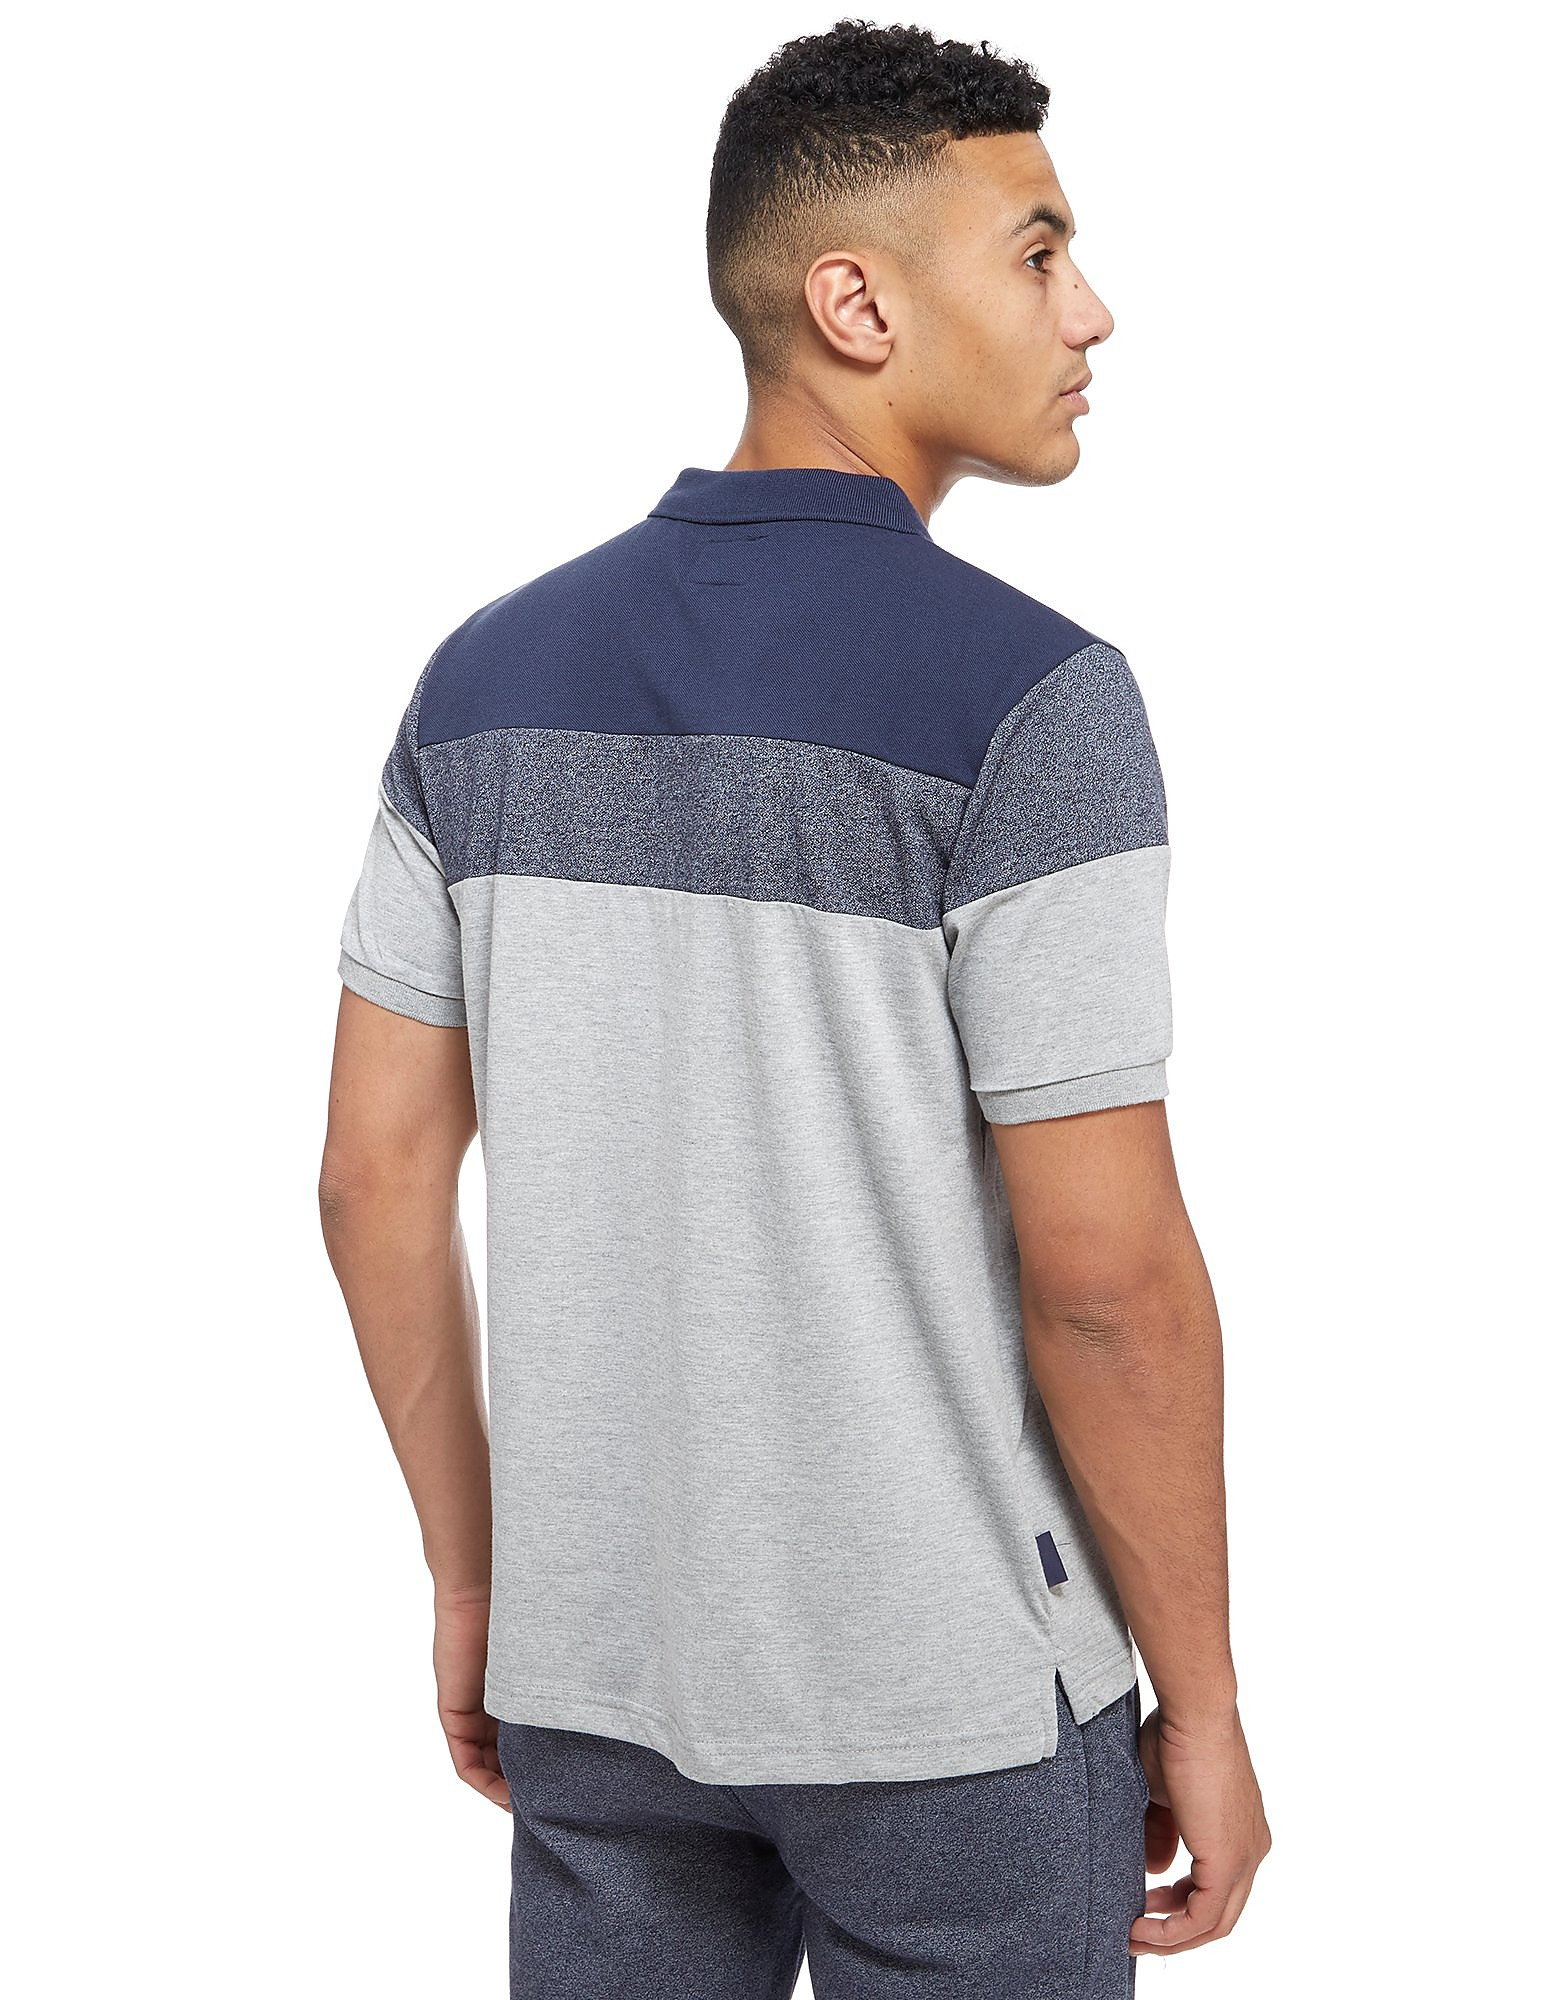 Henleys Cult Polo Shirt